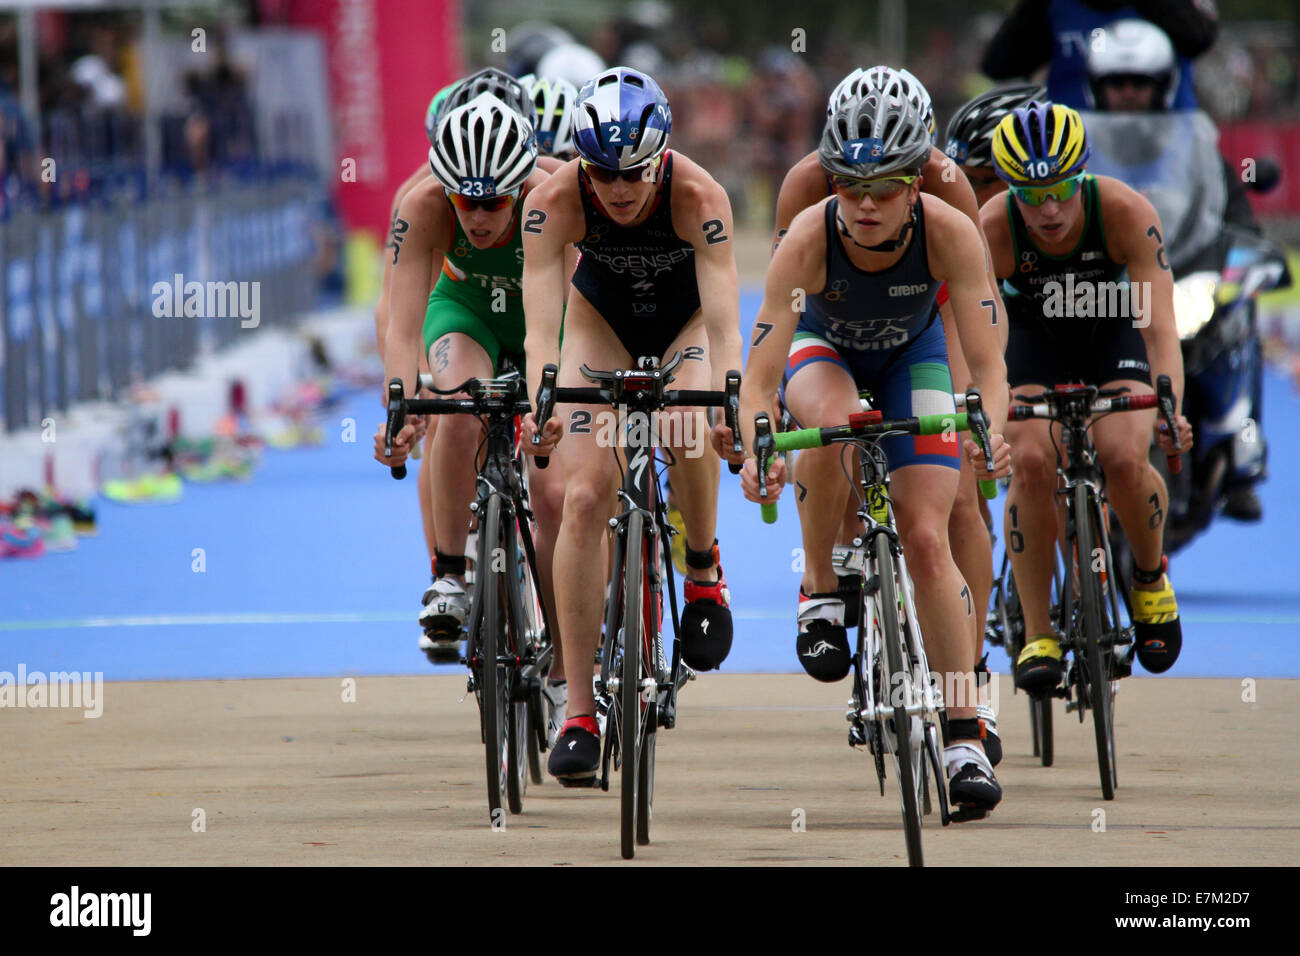 Gwen Jorgensen of USA bike stage at the ITU 2014 held in London. - Stock Image